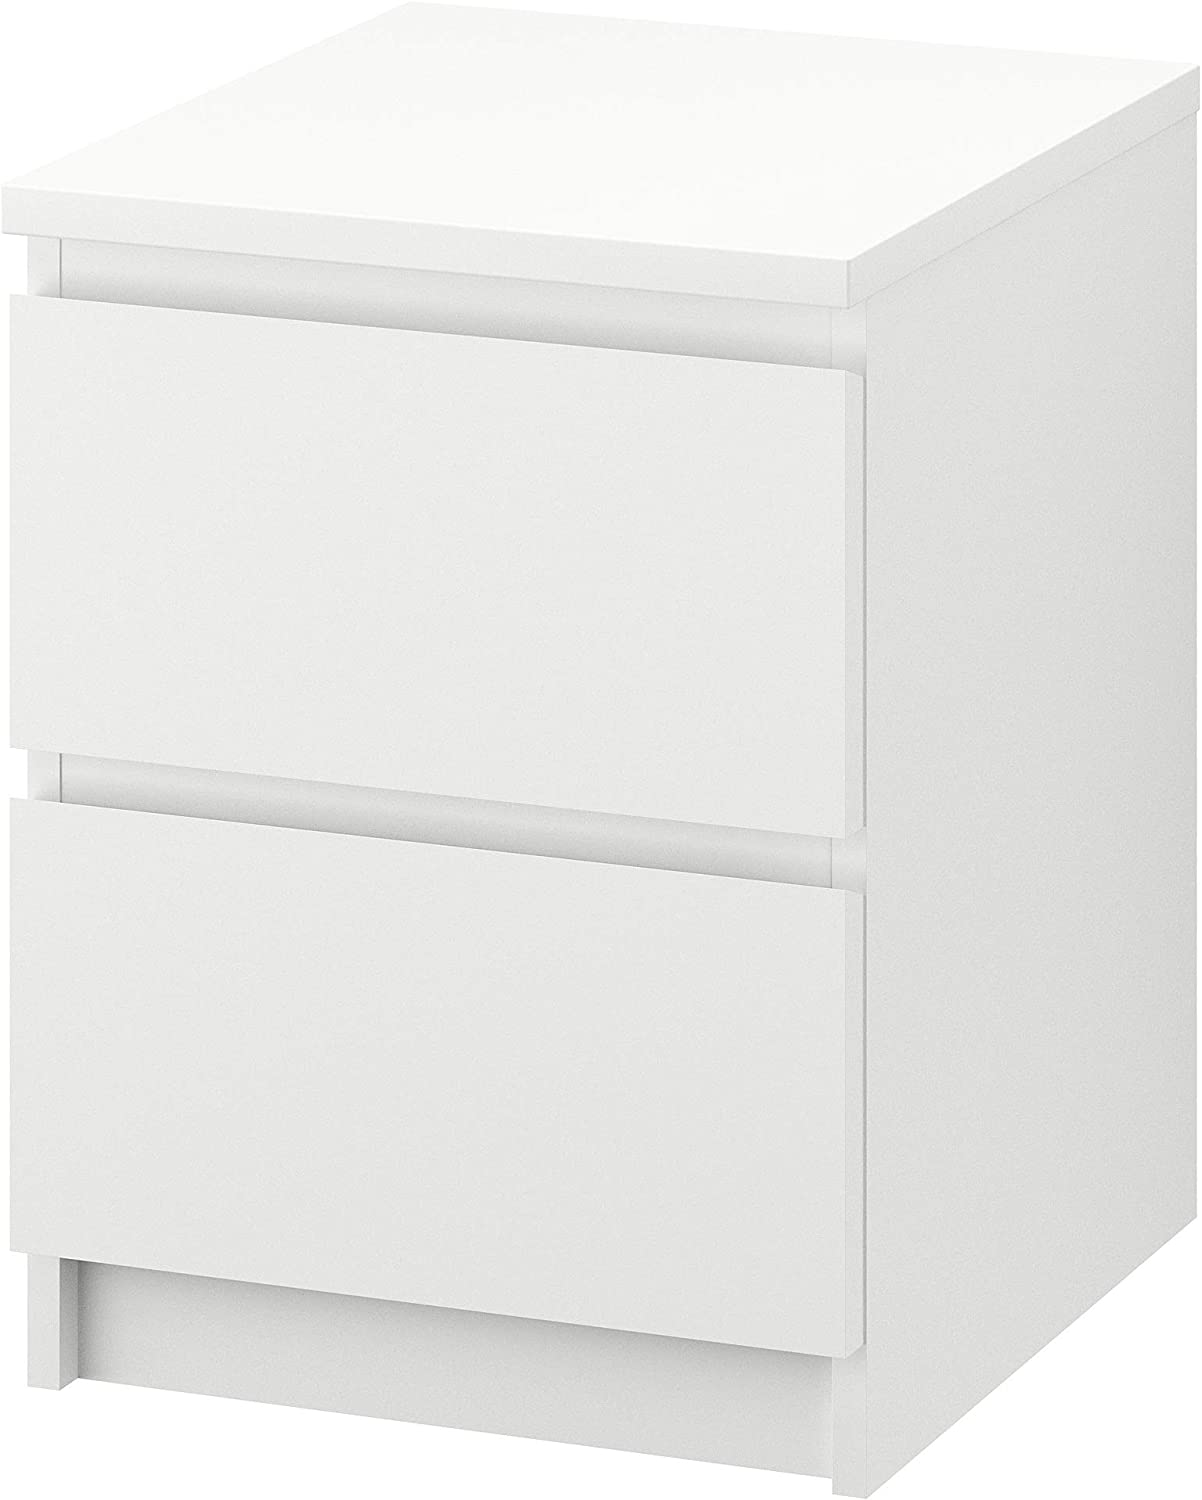 8. IKEA Two Drawers White Night Table